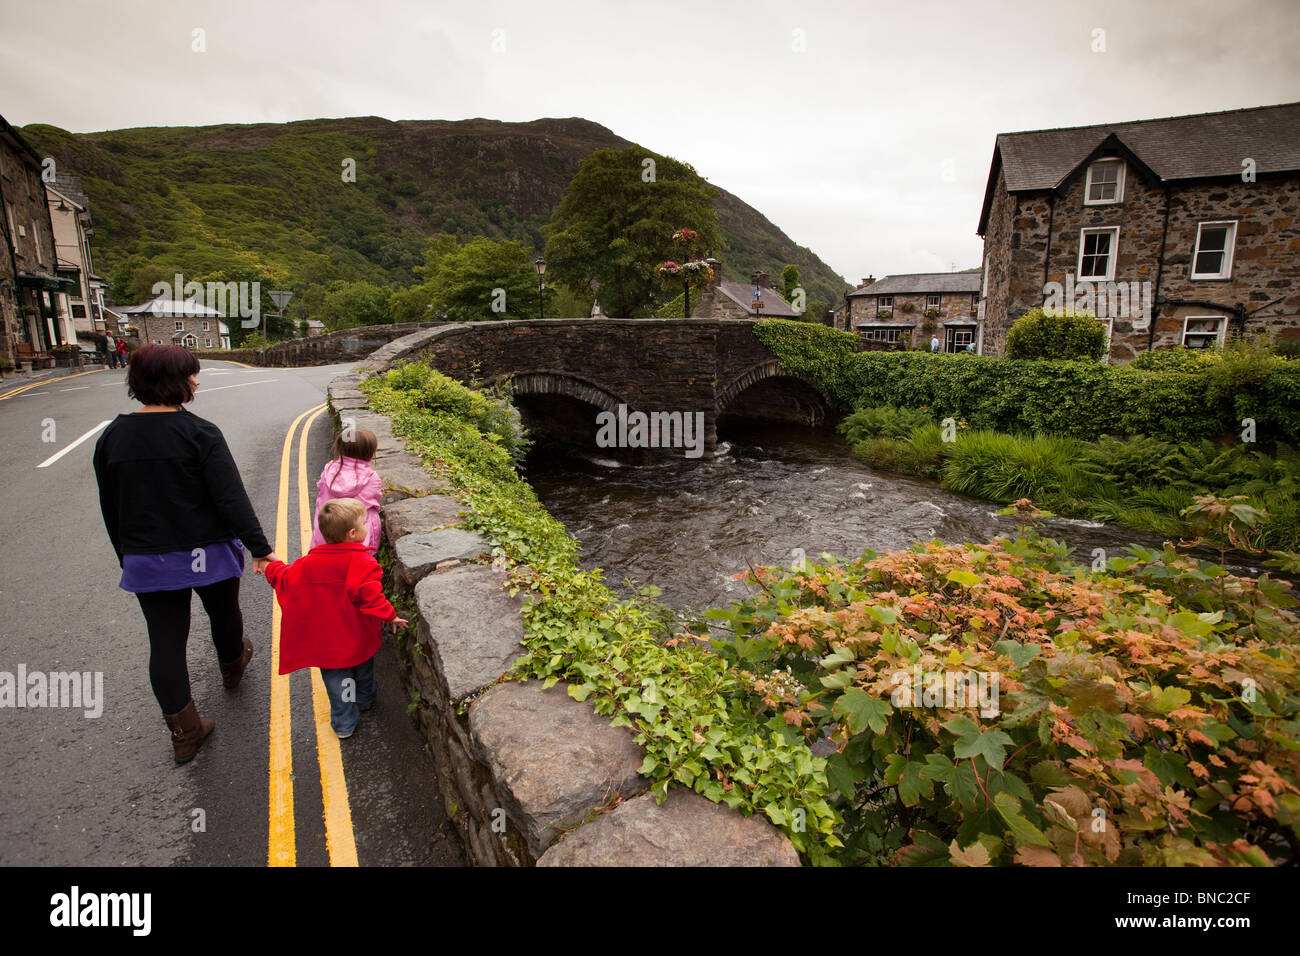 UK, Wales, Snowdonia, Beddgelert, young family walking in road at old stone bridge over Afon Colwyn - Stock Image